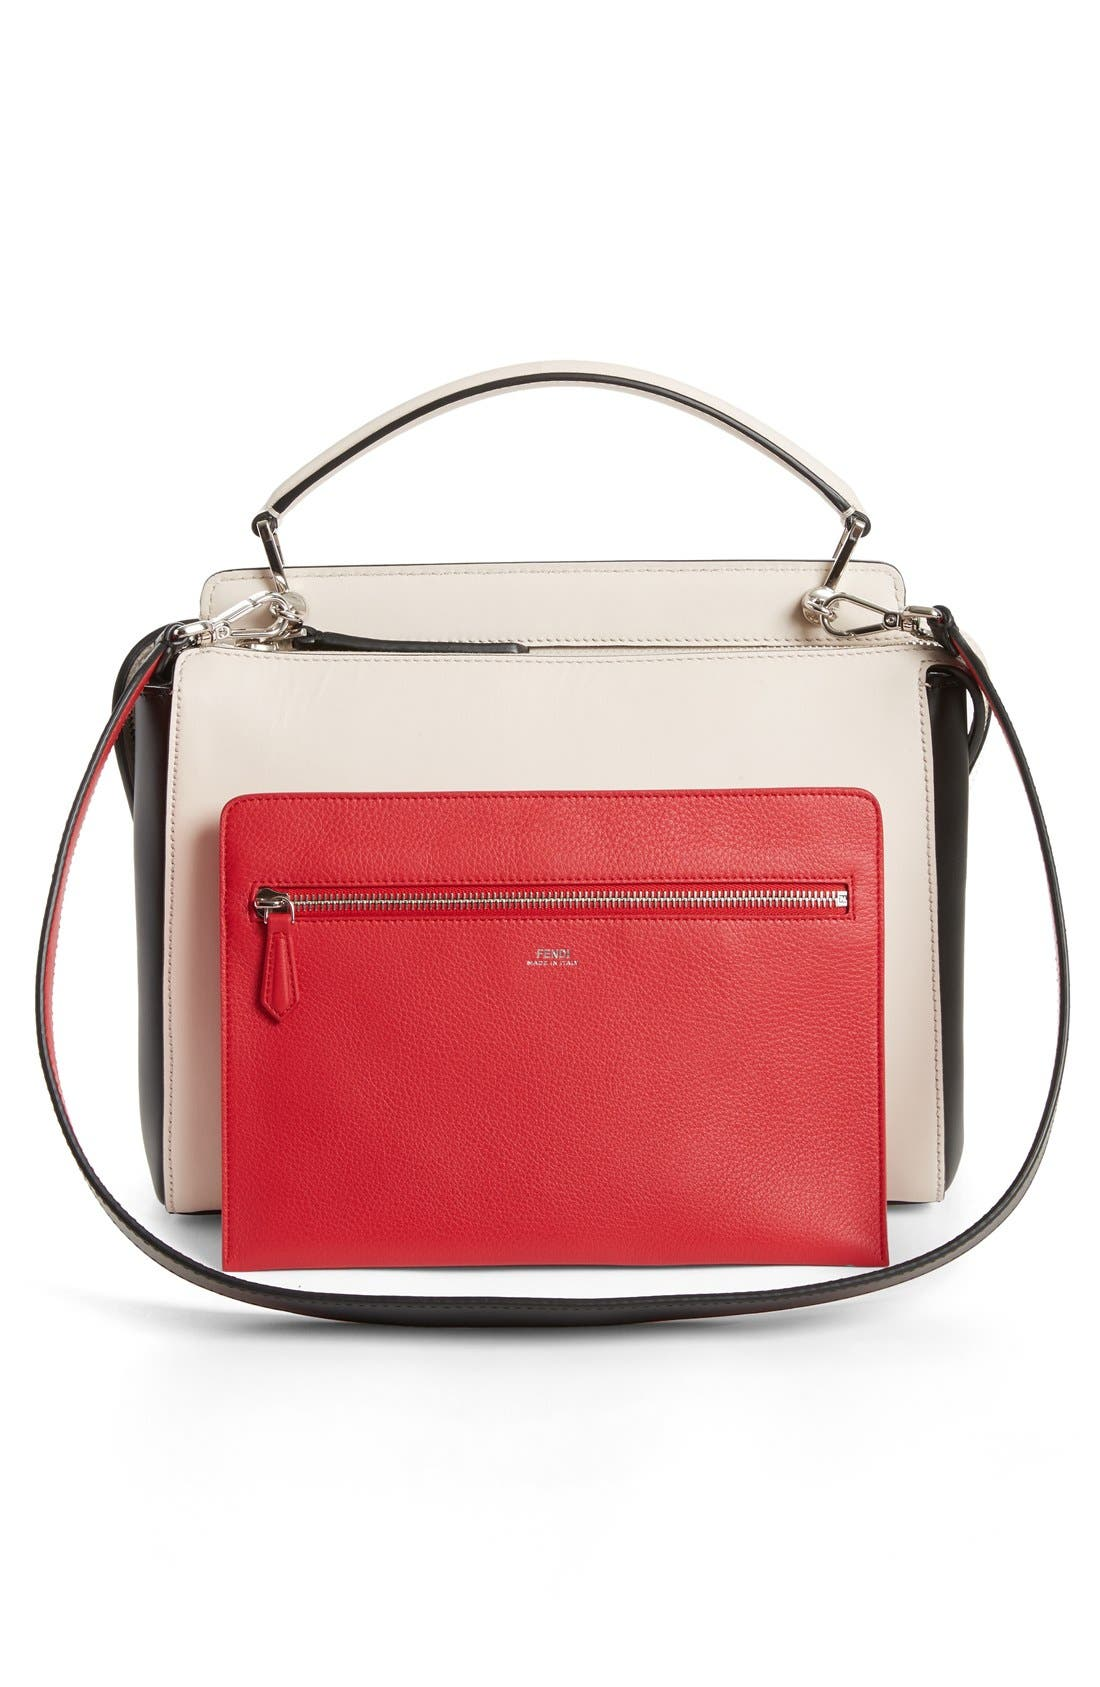 DOTCOM Tricolor Whipstich Calfskin Satchel,                             Alternate thumbnail 3, color,                             White/ Brown/ Yellow